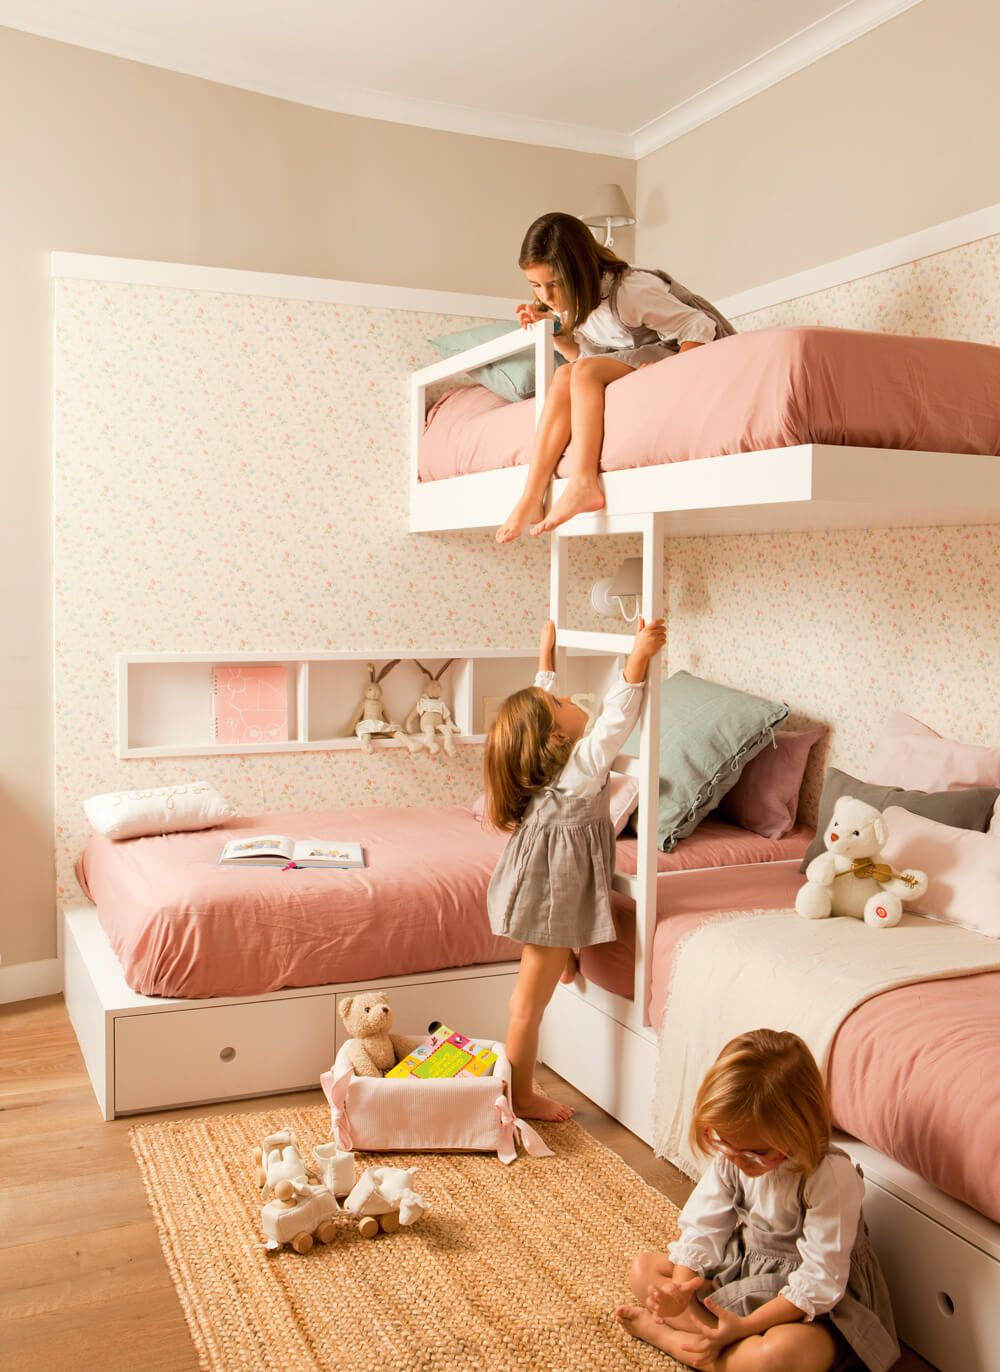 How to make multiple bed layout Work - 6 shared kids room ideas images